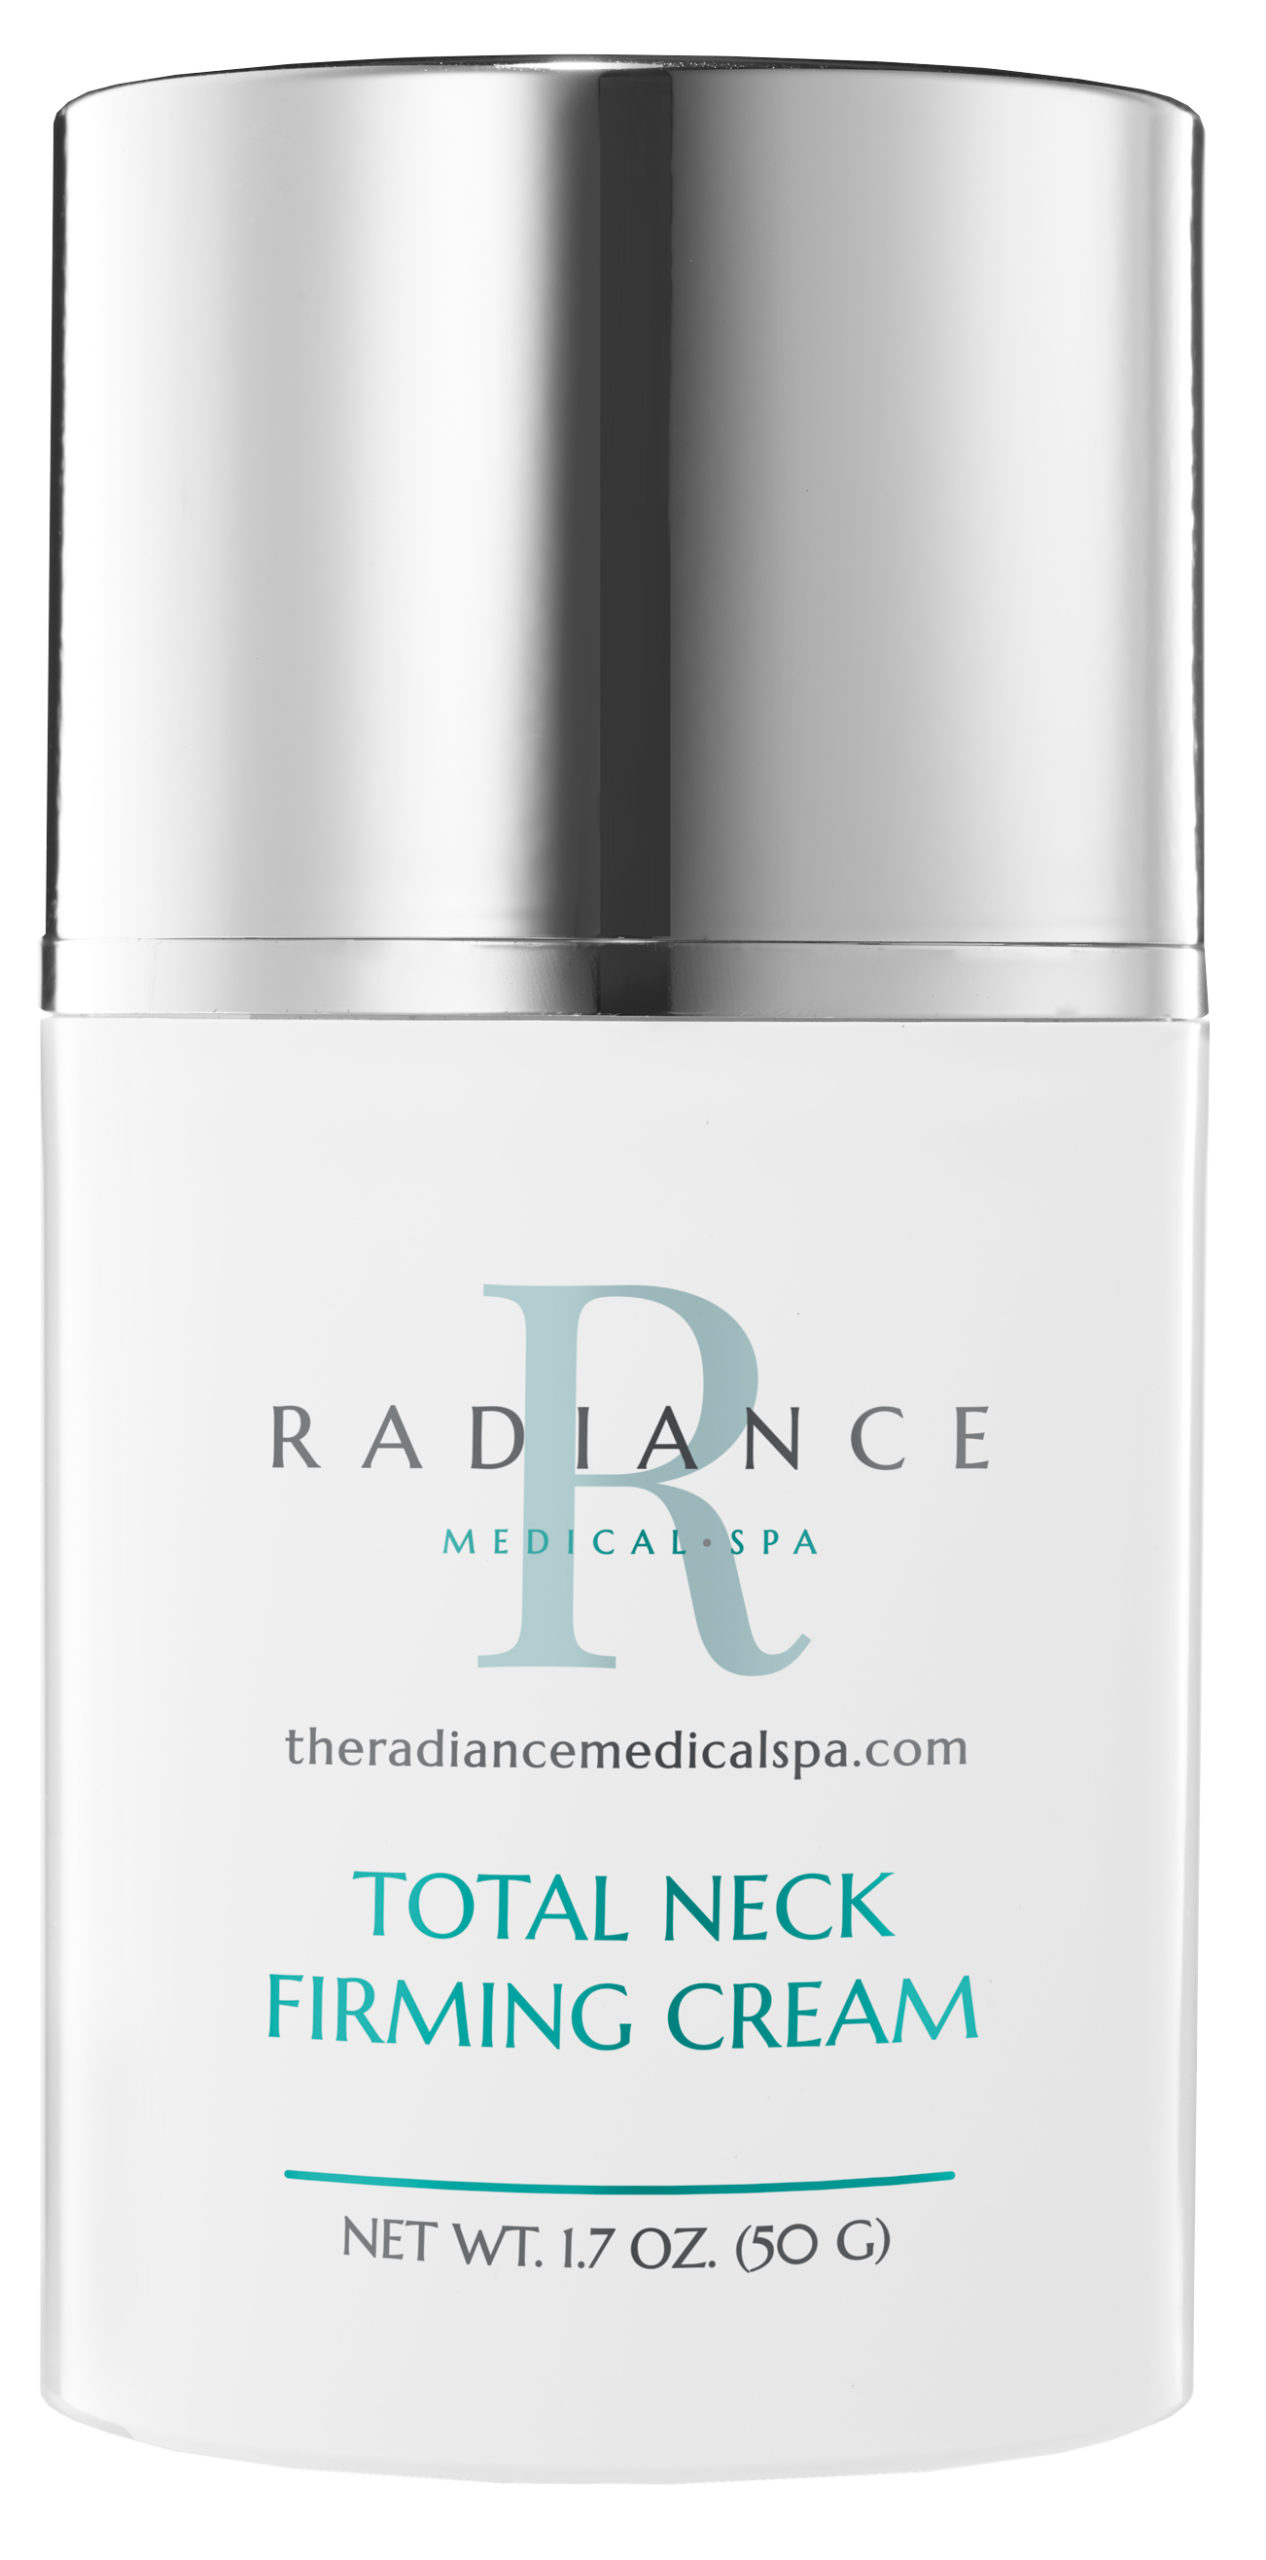 Total Neck Firming Cream